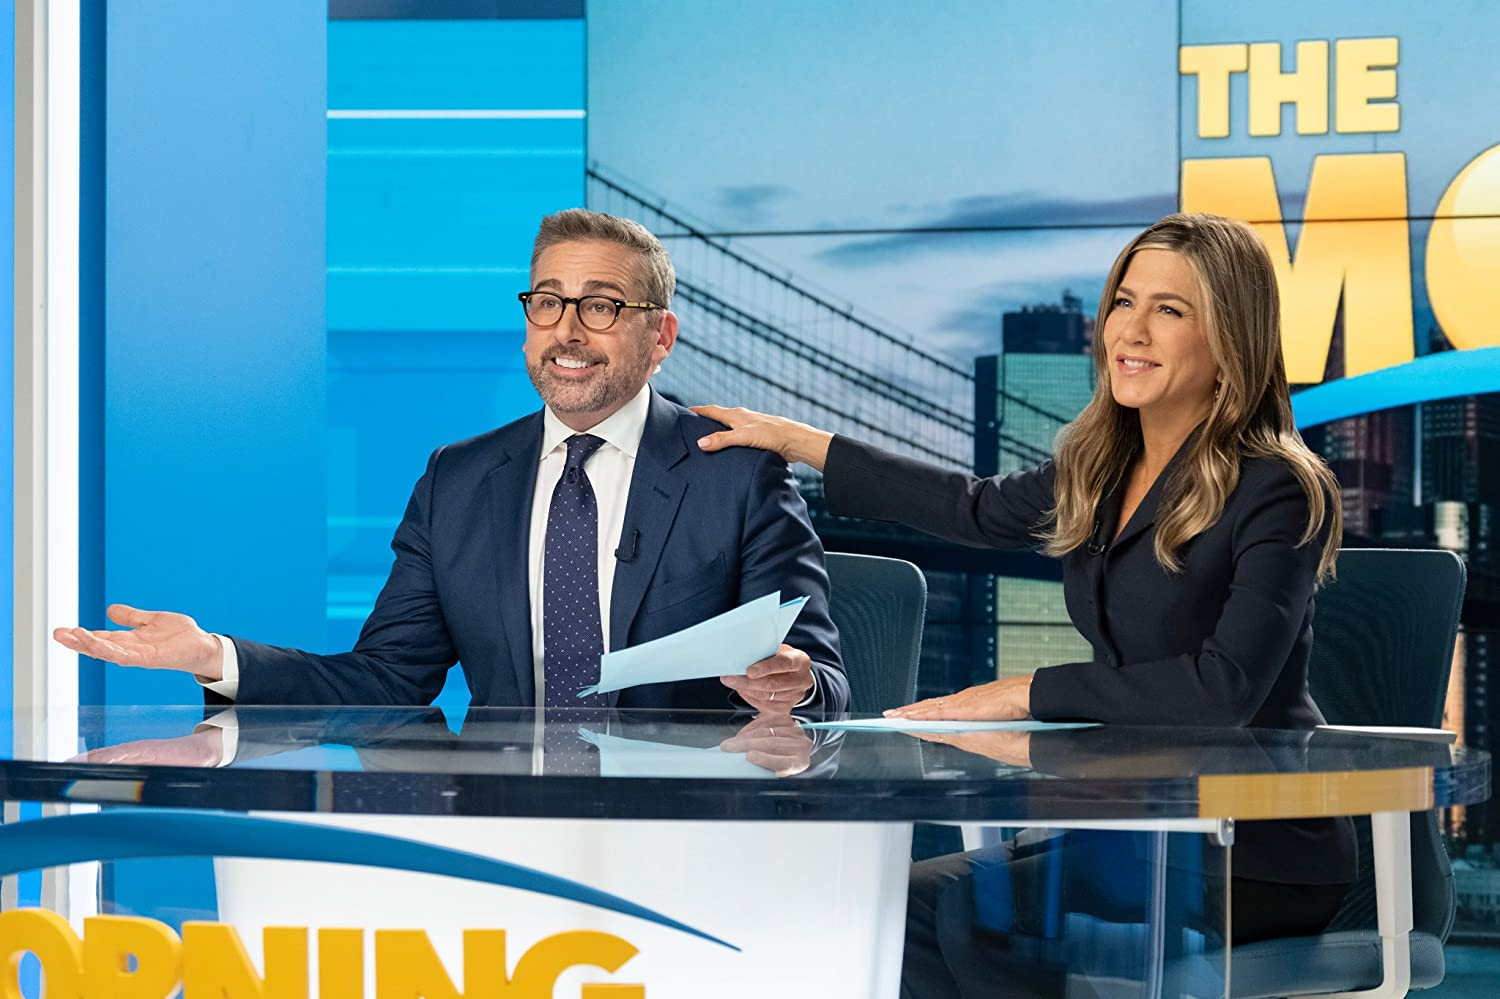 Jennifer Aniston and Steve Carell in The Morning Show (2019)